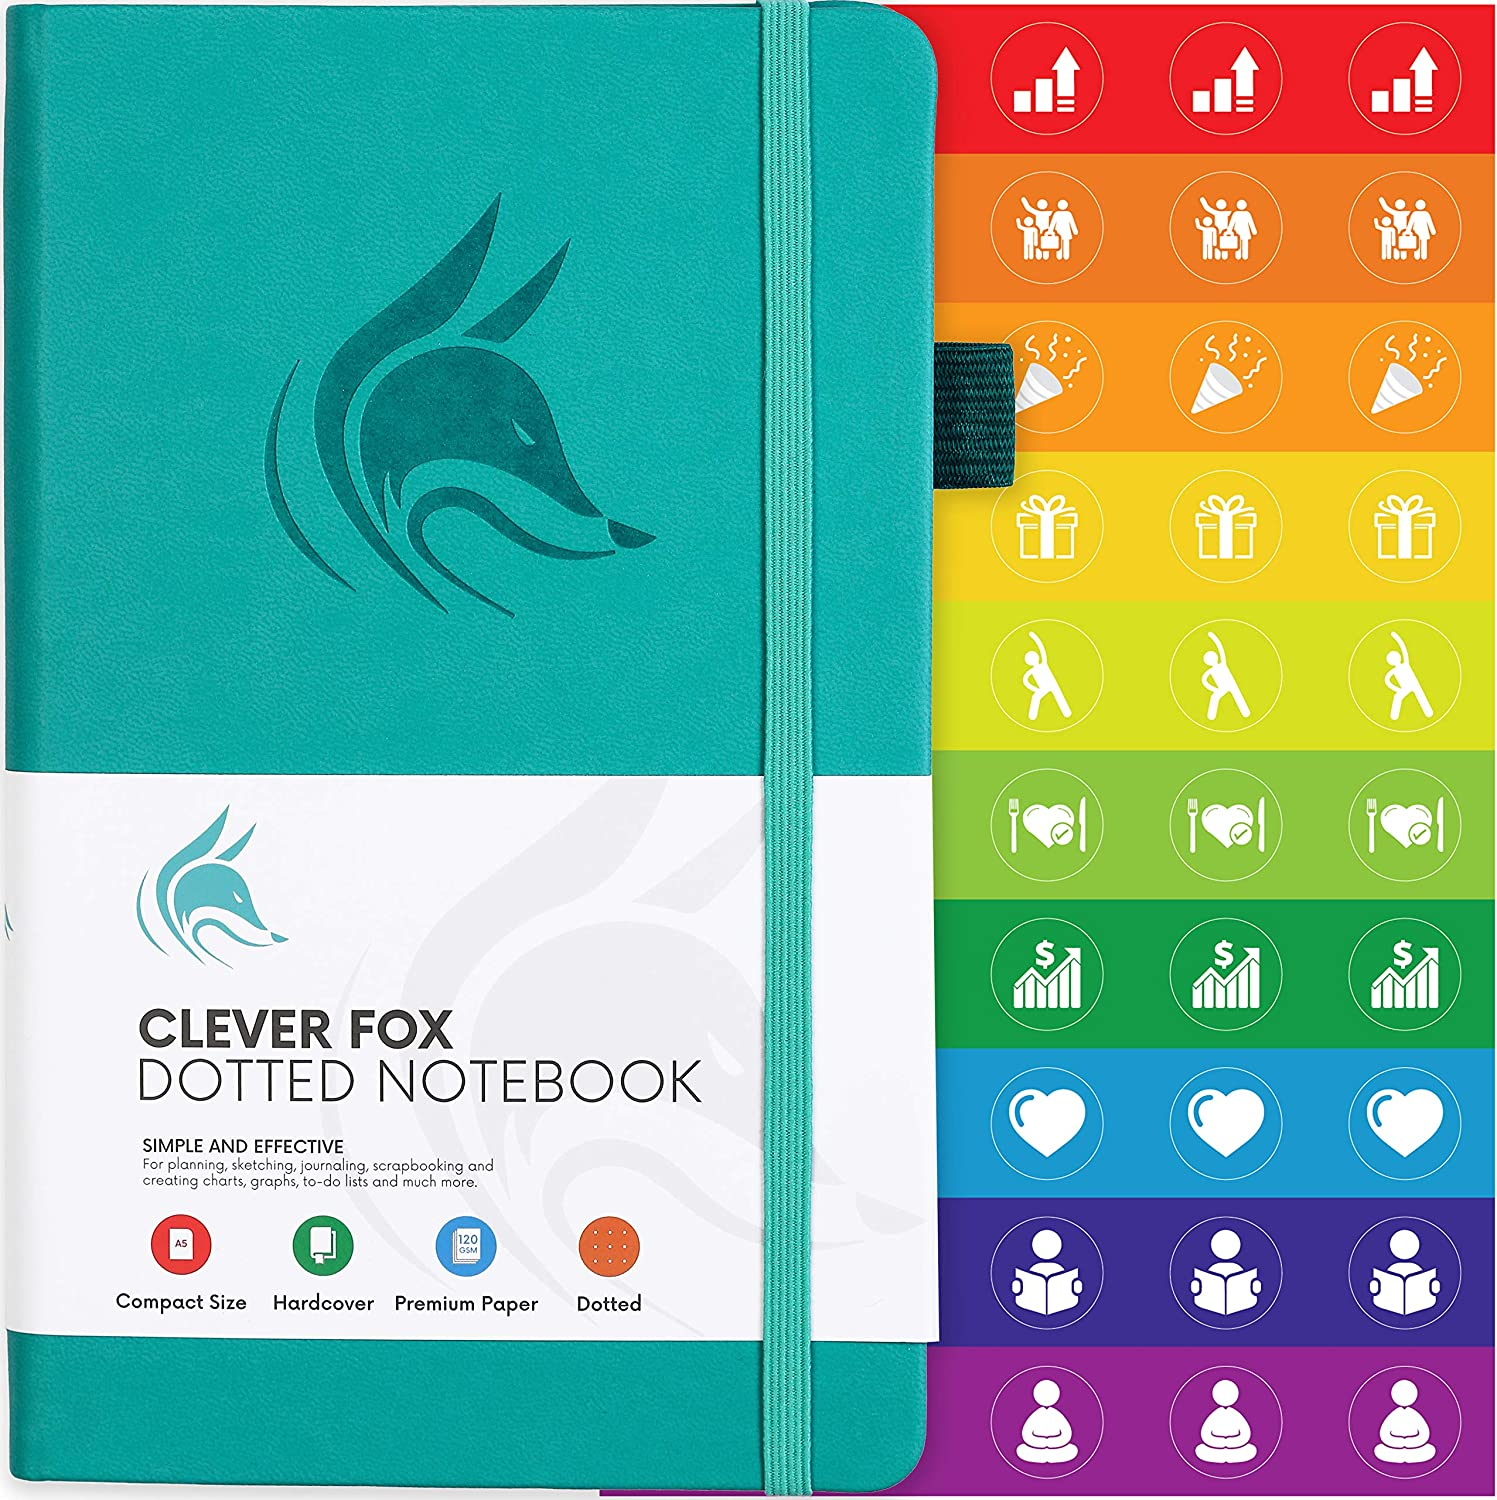 Clever Fox Dotted Notebook – Dot Grid Bullet Numbered Pages Hard Cover Notebook Journal With Thick 120g Paper and Pen Loop, Stickers, 3 Bookmarks, Smooth Faux Leather, 5.12'' x 8.27'' – Turquoise